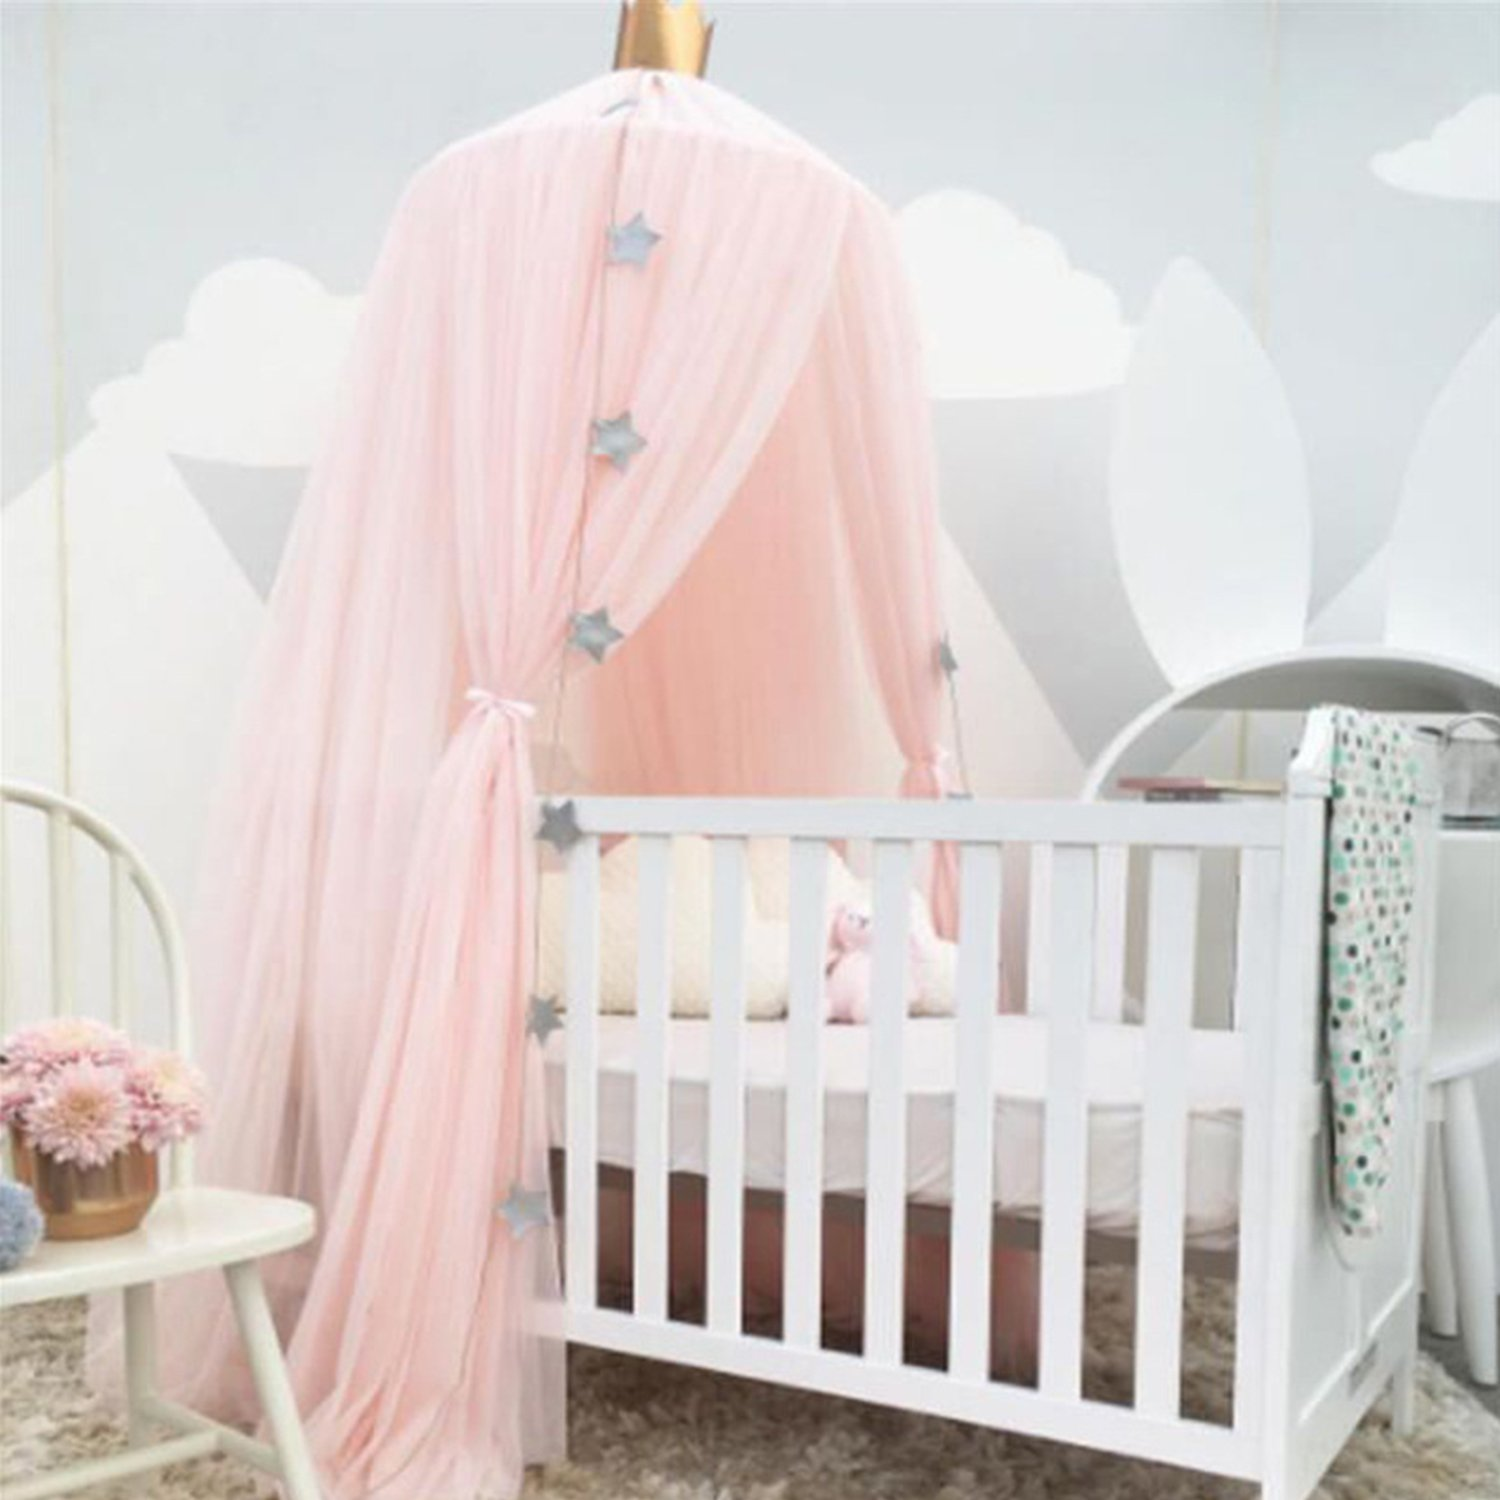 Yimii Round Dome Princess Bed Canopy, Bed Curtains Mosquito Net for Kids Baby, Pink Canopy for Girls Room Playing.